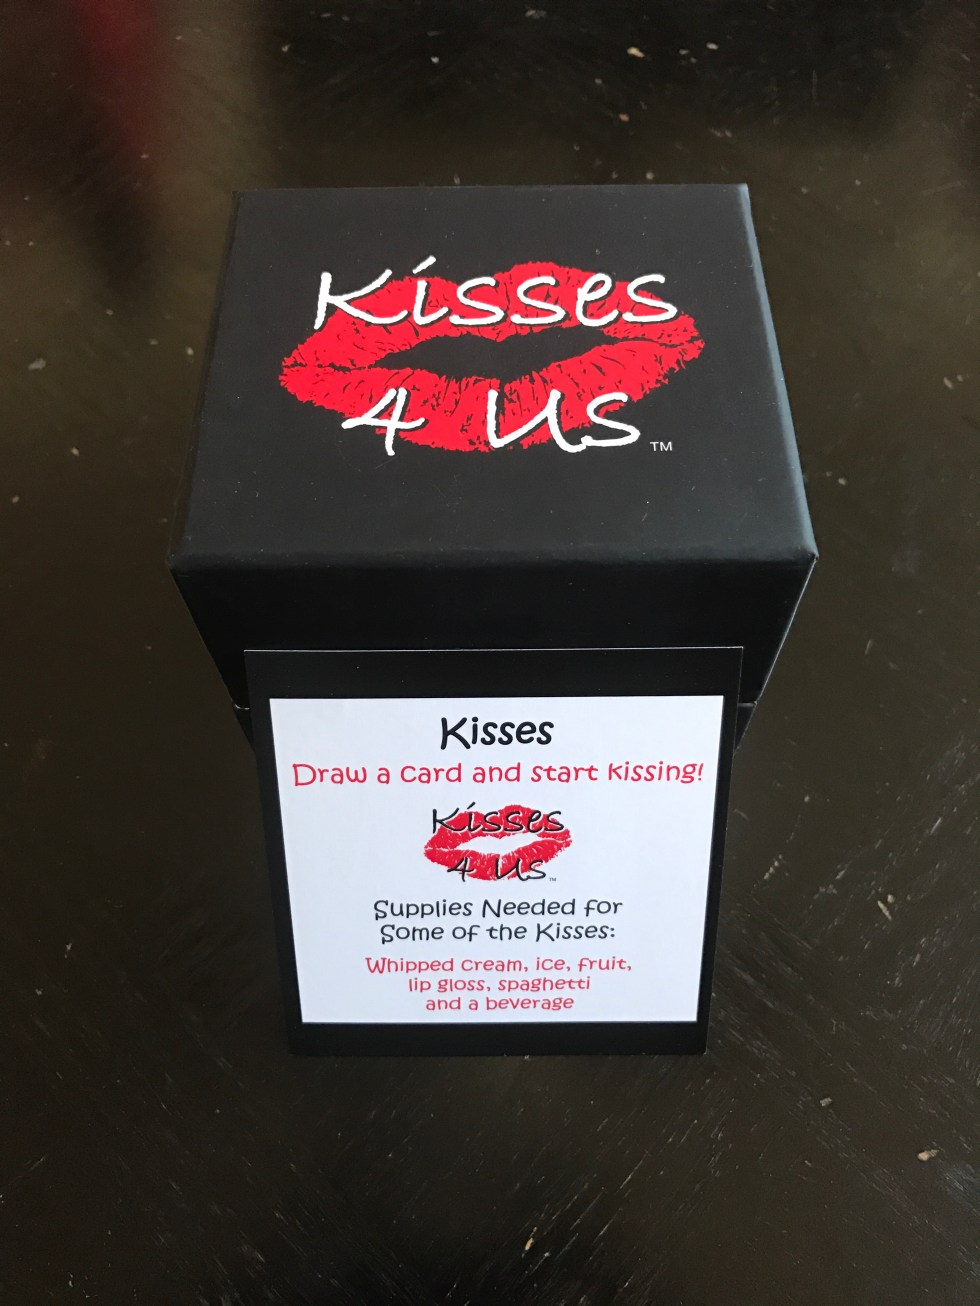 ce5edfd9433a Kisses 4 Us is a box of Fun, Flirty and Romantic Kisses for Making Kissing  FUN! Priced at only $19.99, each Kisses 4 Us soft-touch laminated box is  filled ...